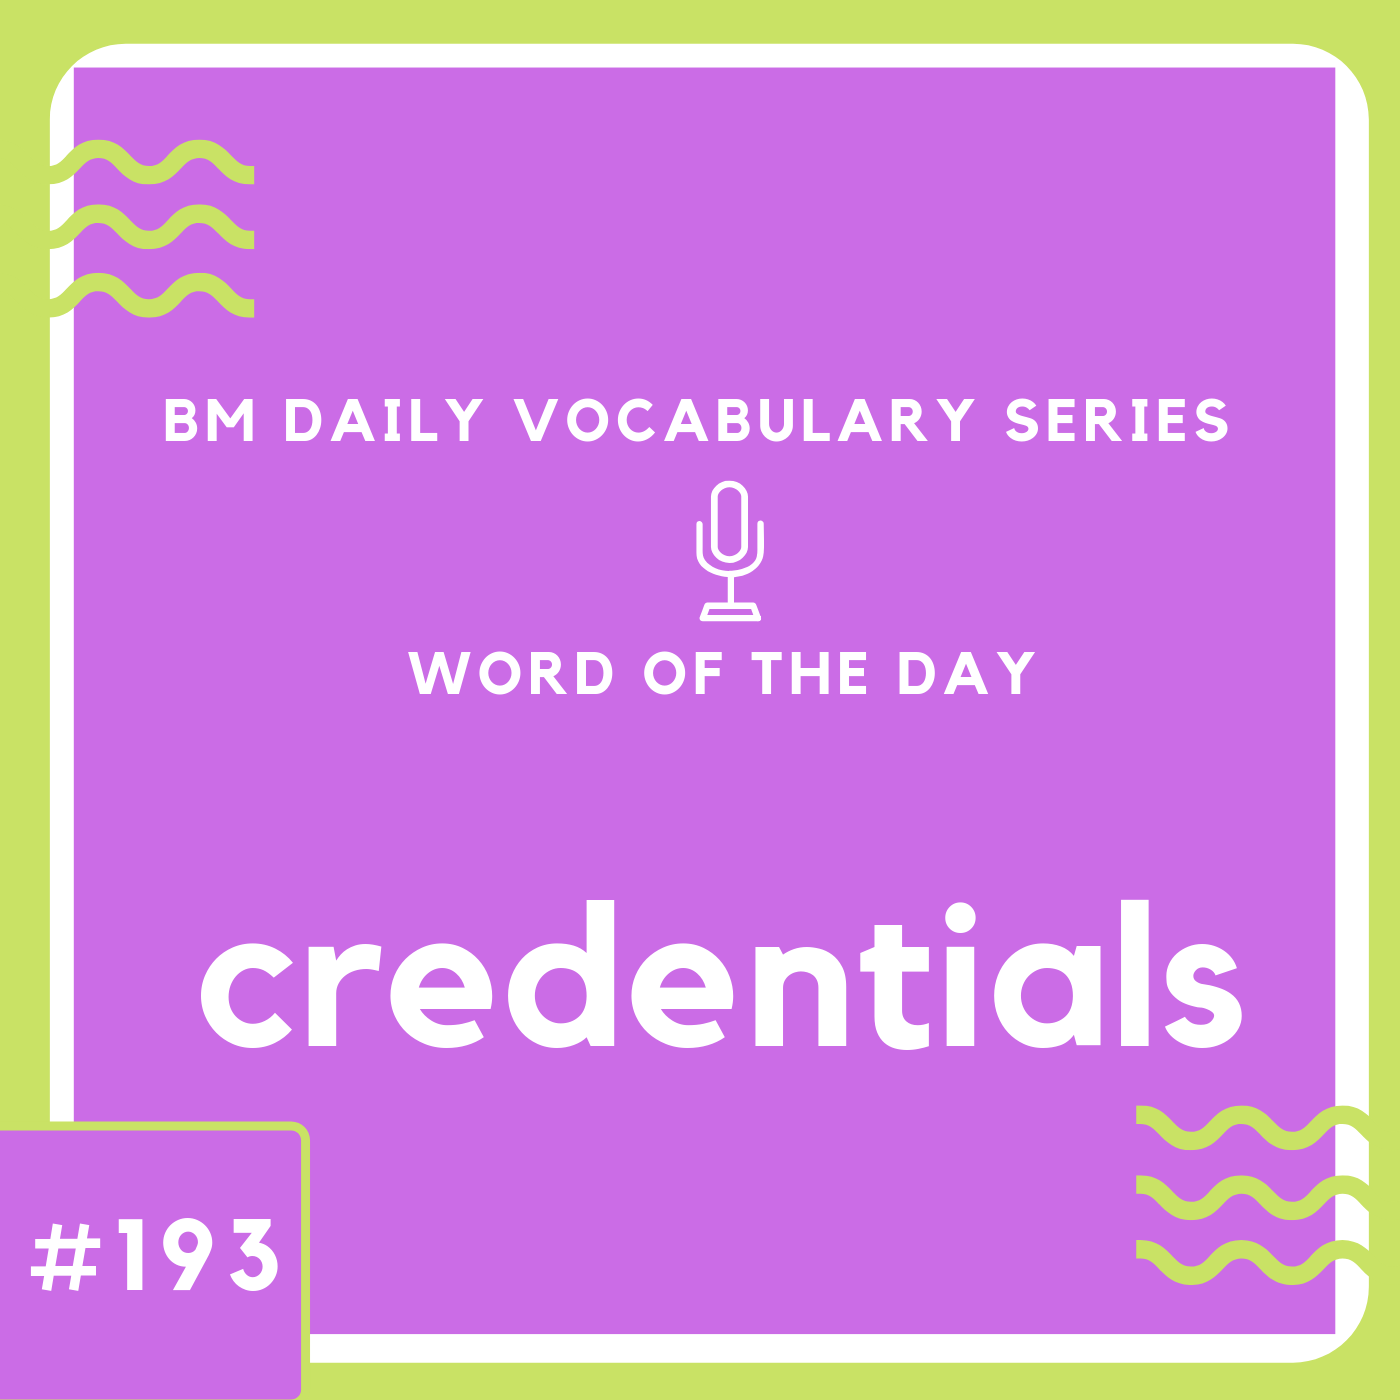 200 BM Daily Vocabulary #193 | credentials